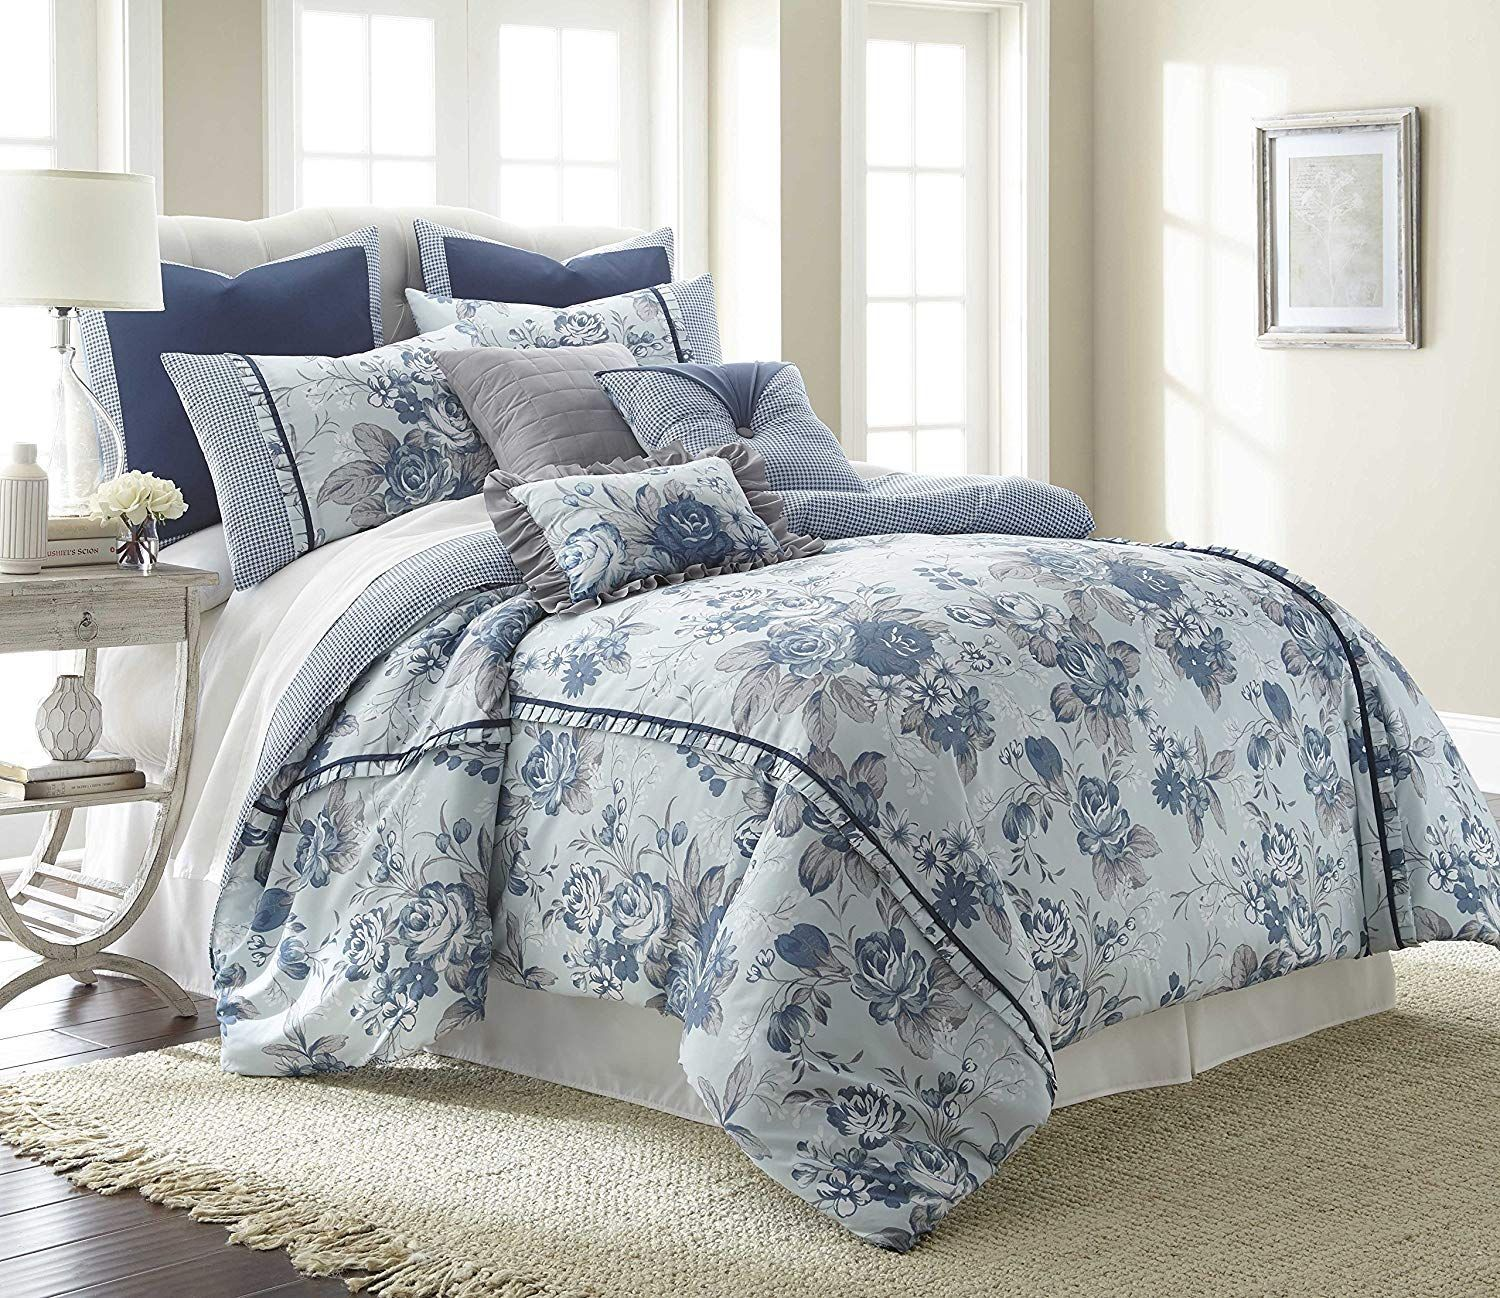 Farmhouse comforters rustic comforters in 2020 with